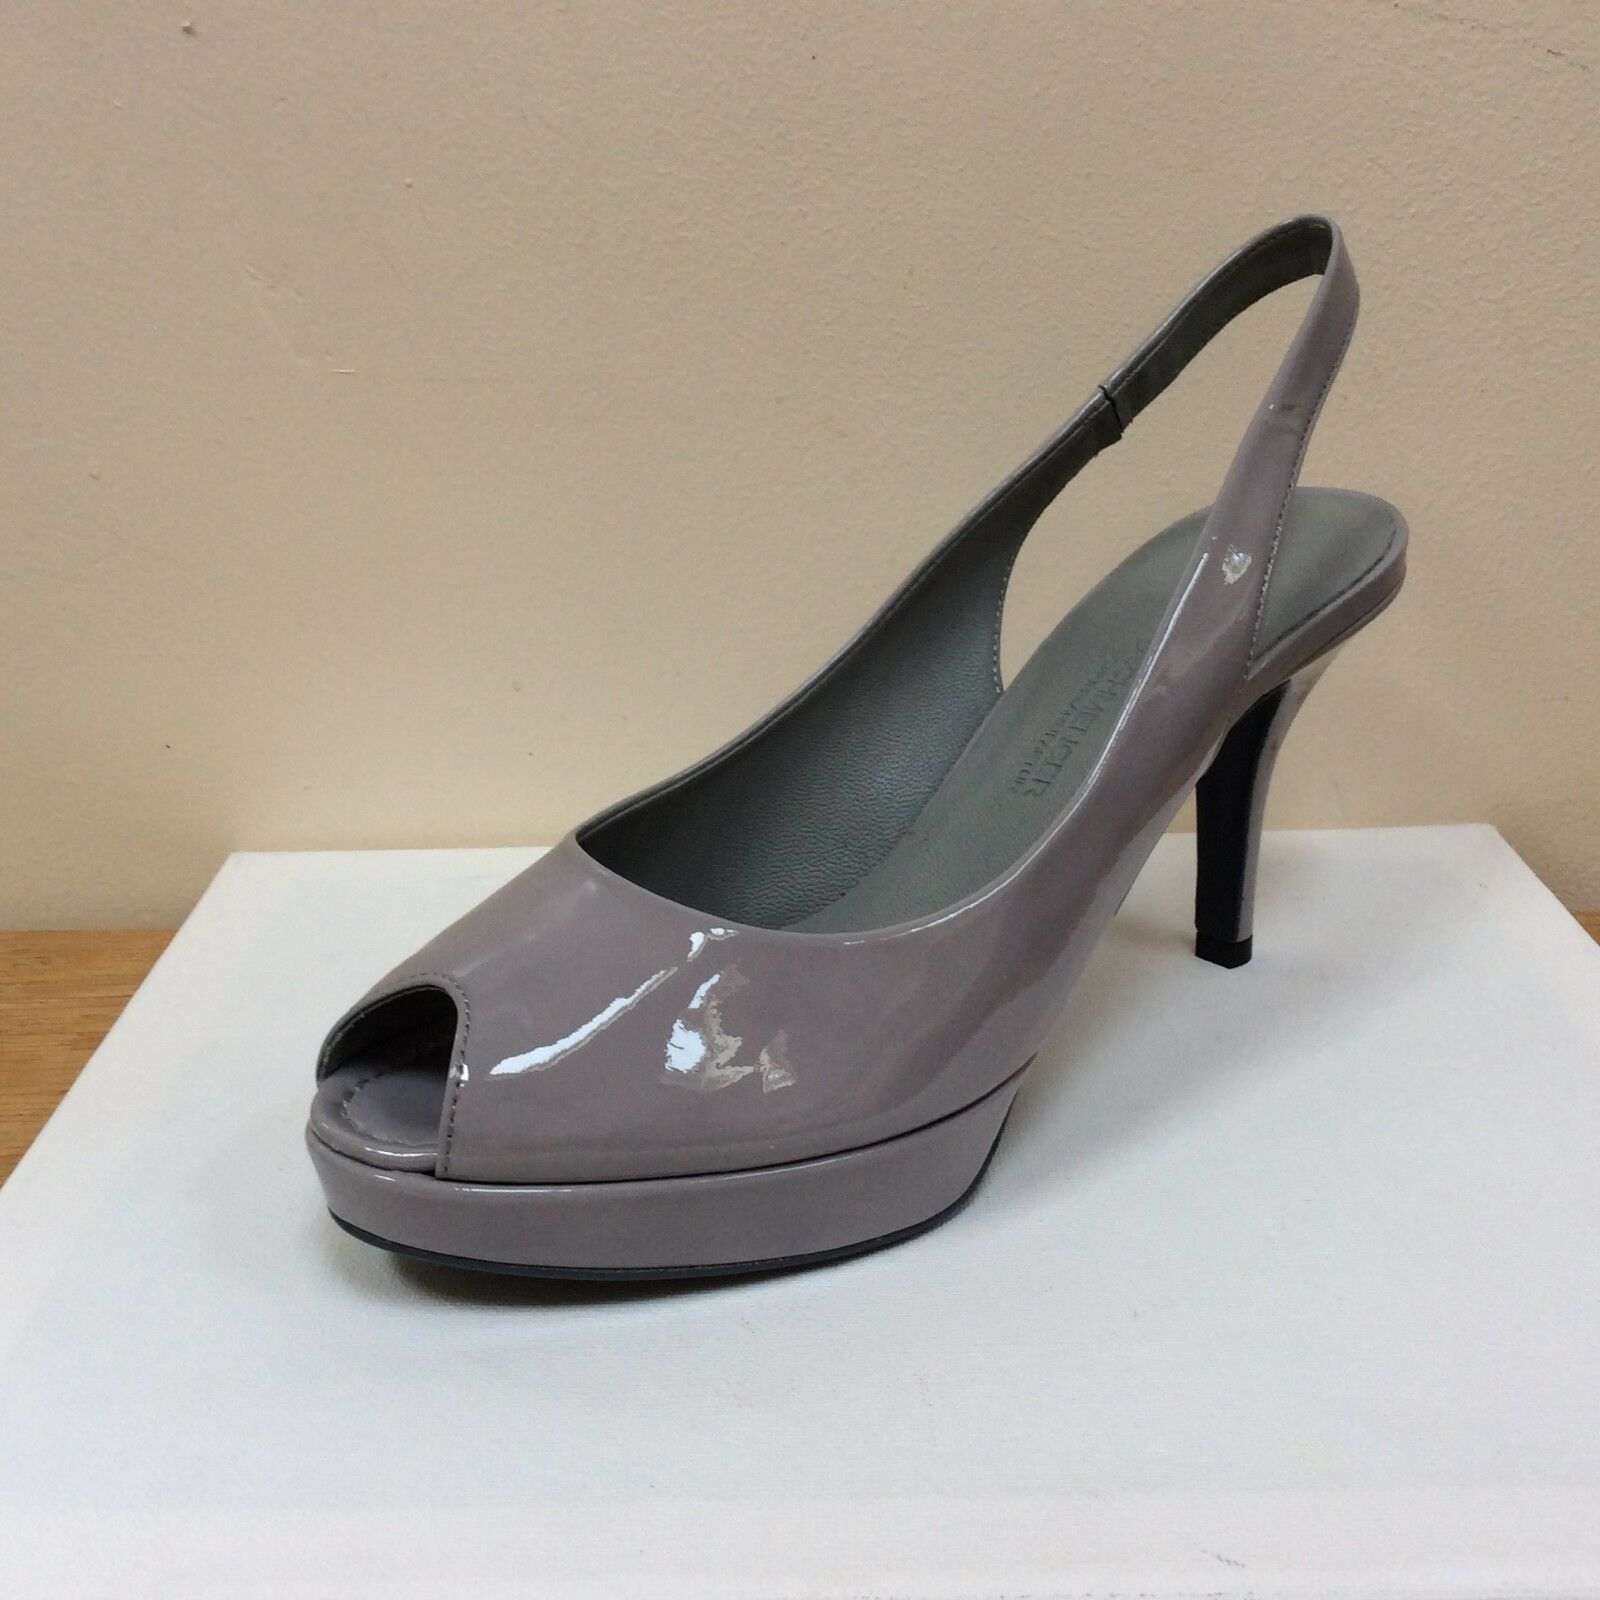 K&S Rose light gris-fog patent peep toe slings, UK 8 EU 41, BNWB